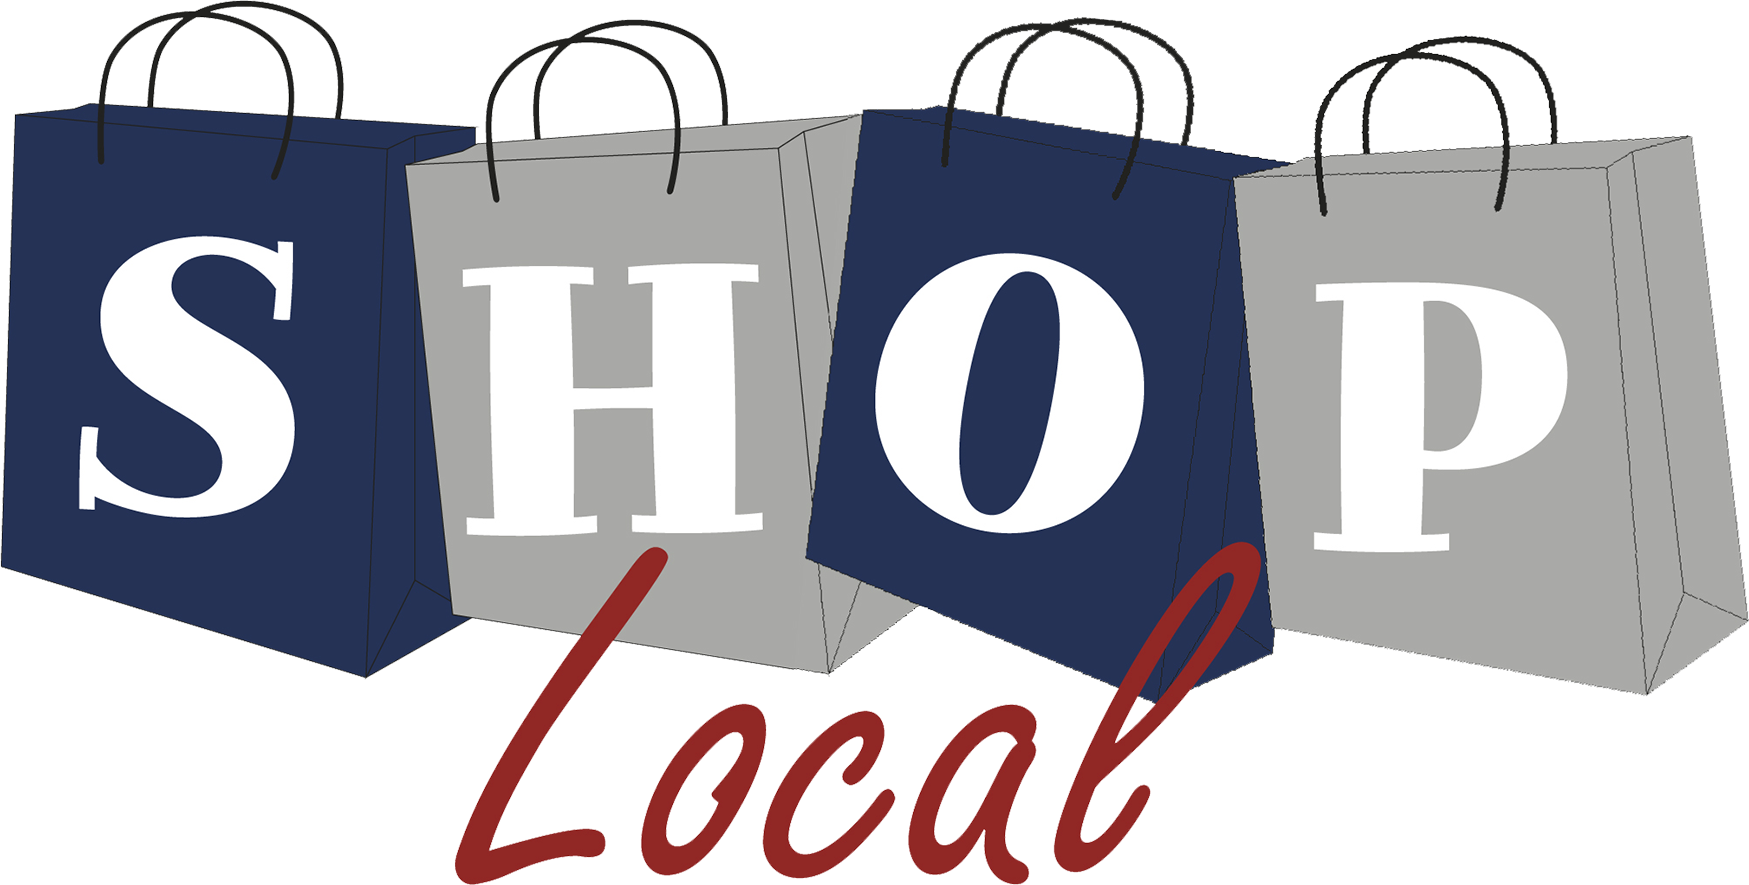 Shop clipart local shop, Shop local shop Transparent FREE.